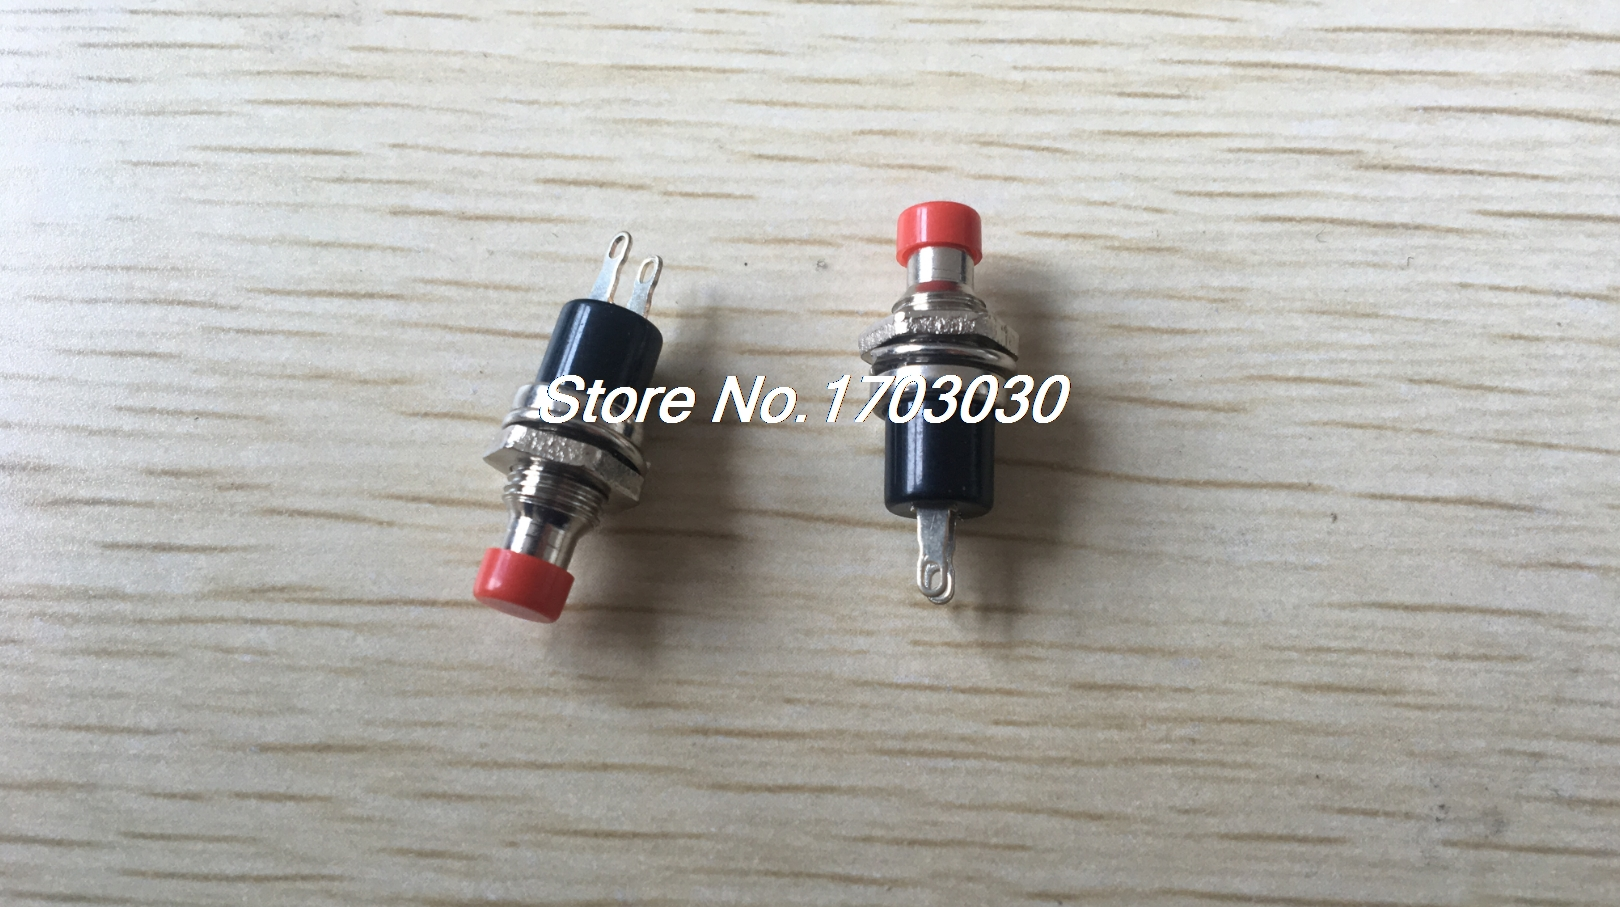 10 pcs Red 2 Pin SPST Off-(On) N/O Round Momentary Push Botton Switch 1A 250V AC 10pcs lockless 0 5a 250v ac momentary on off 2 pin push button spst mini switch red